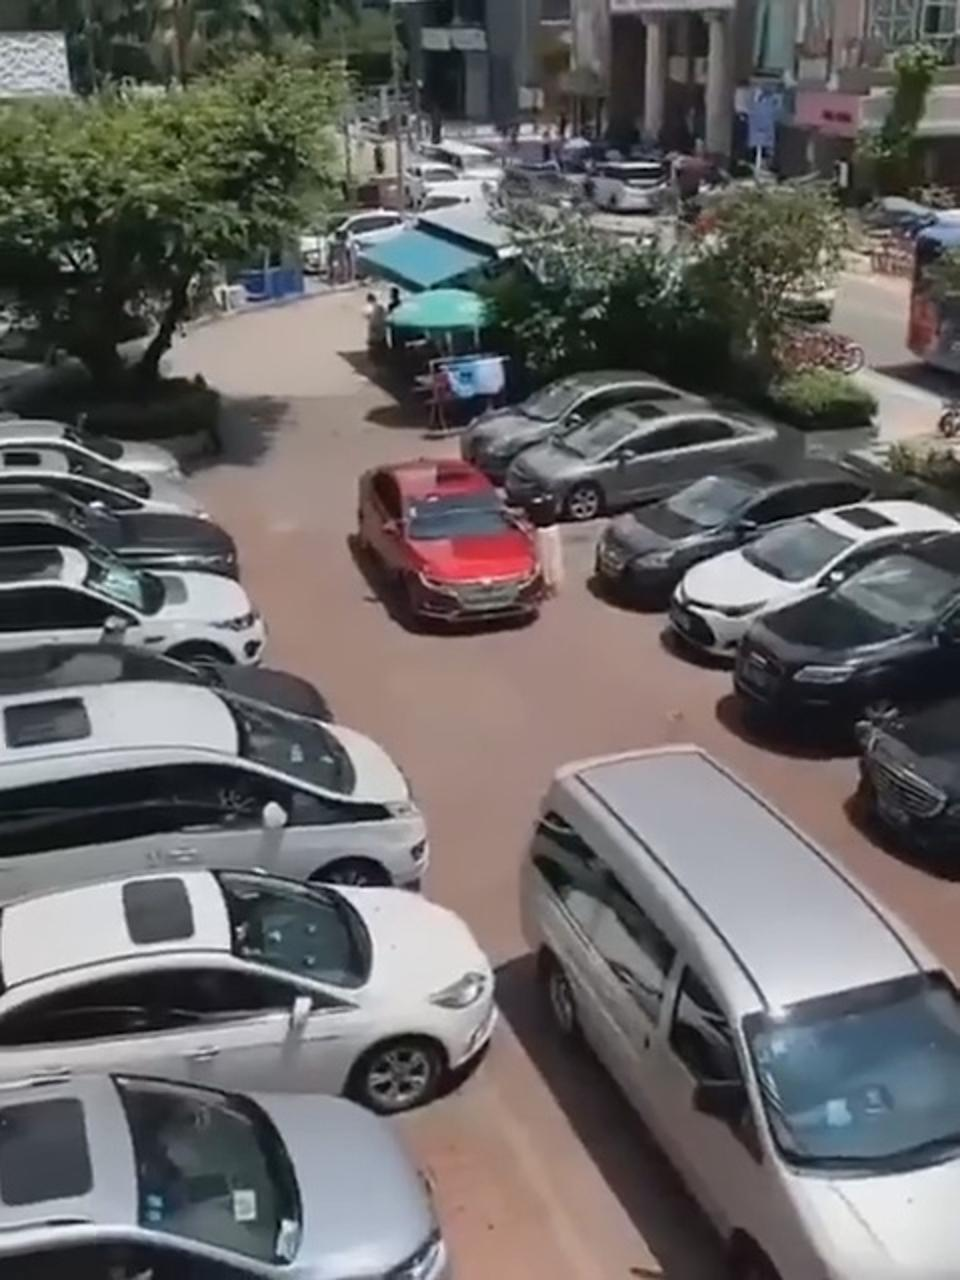 Video of the incident has been viewed over 10 million times (AsiaWire)